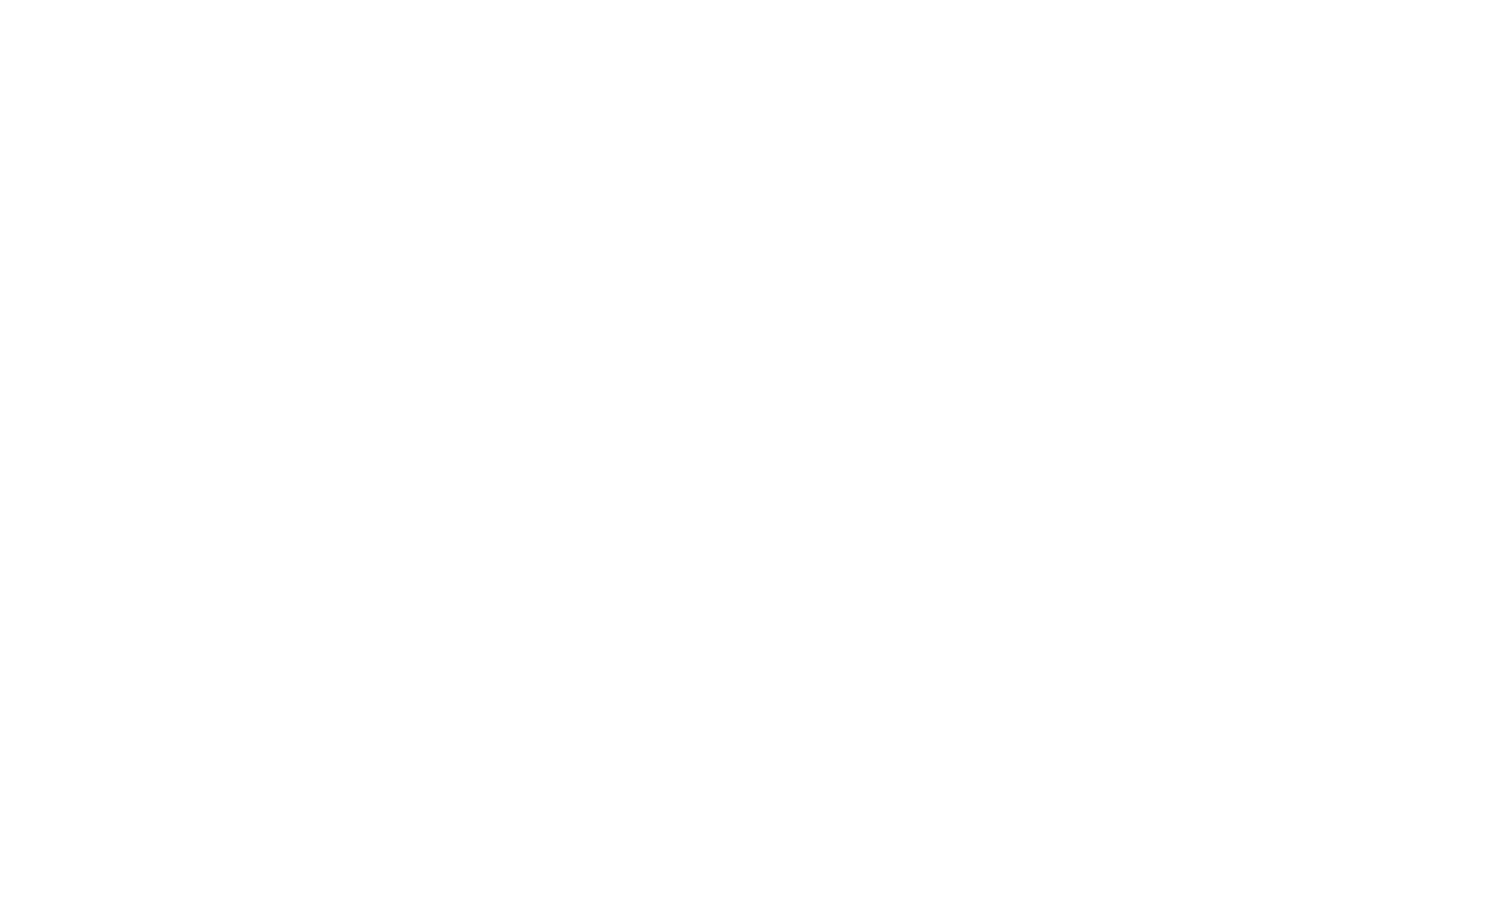 Falcon Beach Ranch